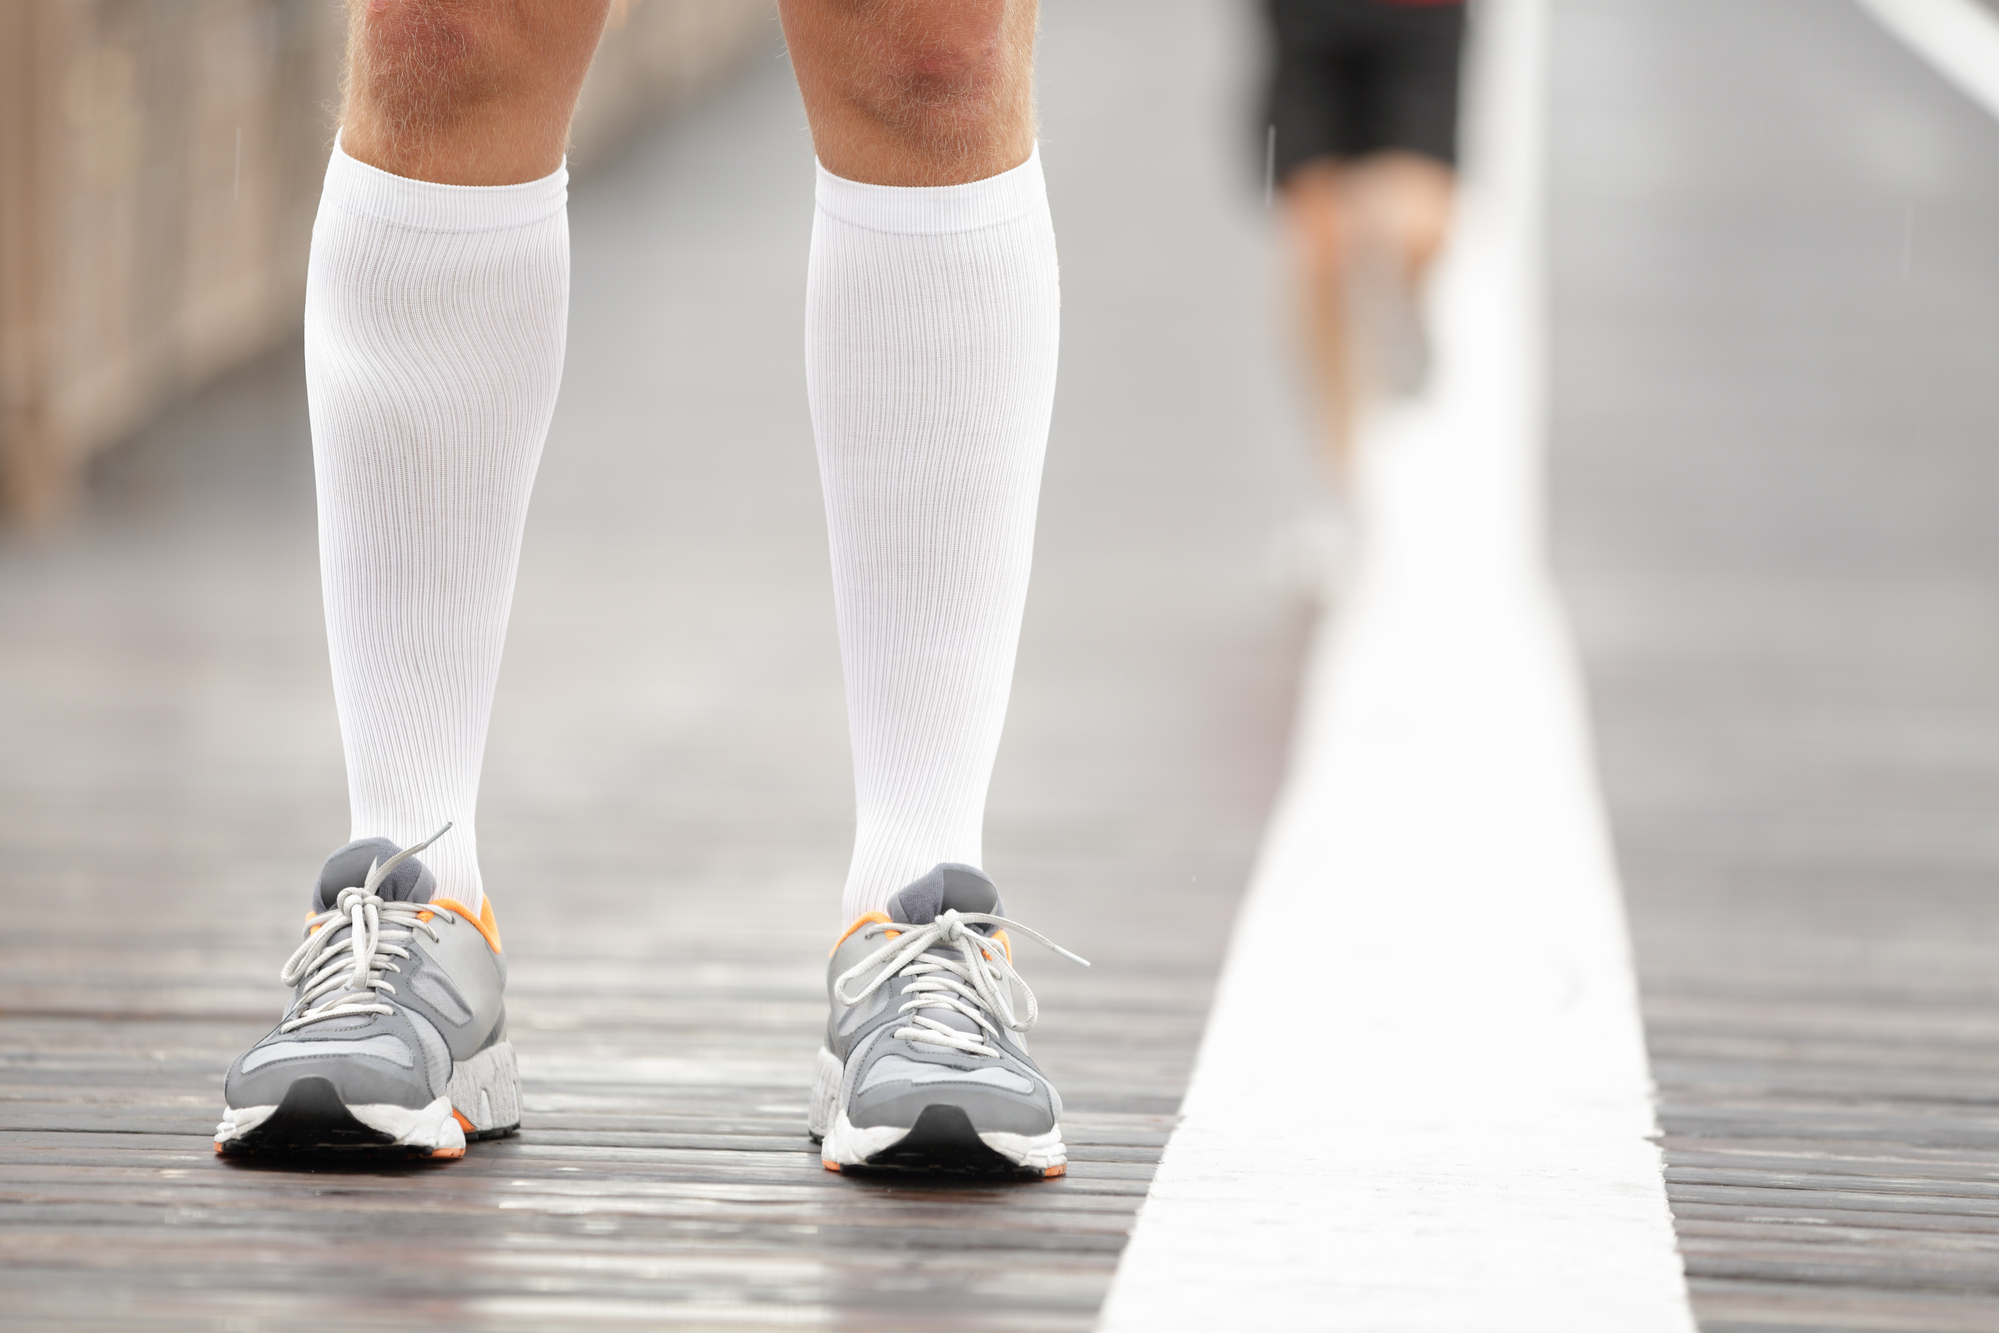 What Do Compression Socks Help With